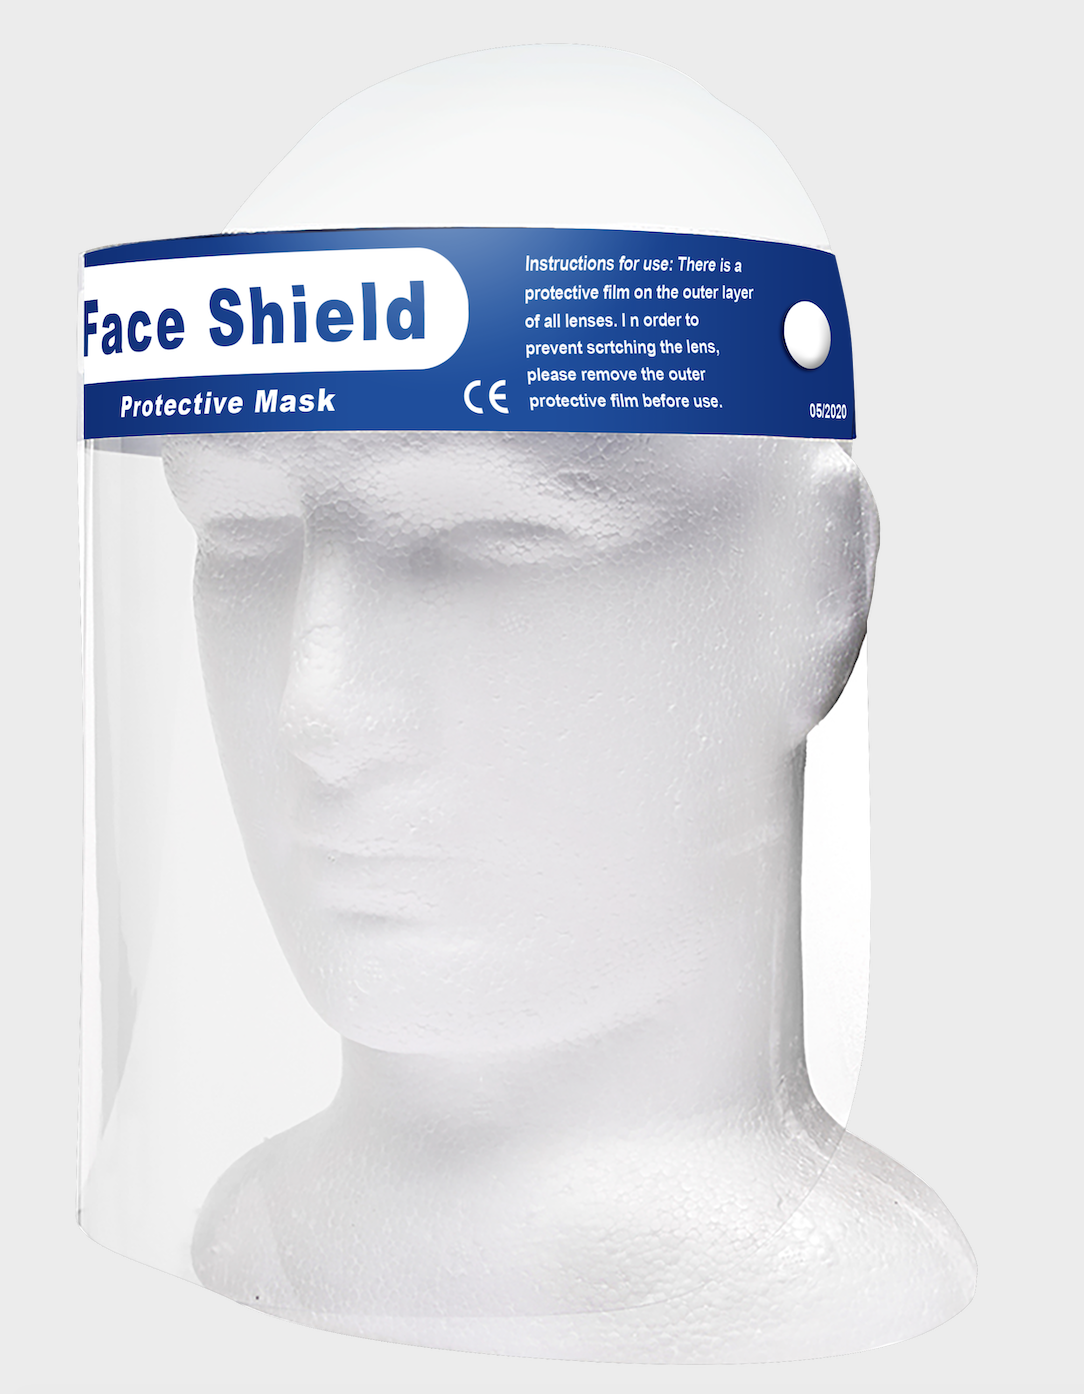 Armour Safety Products Ltd. - Armour Face Shield protective mask / visor